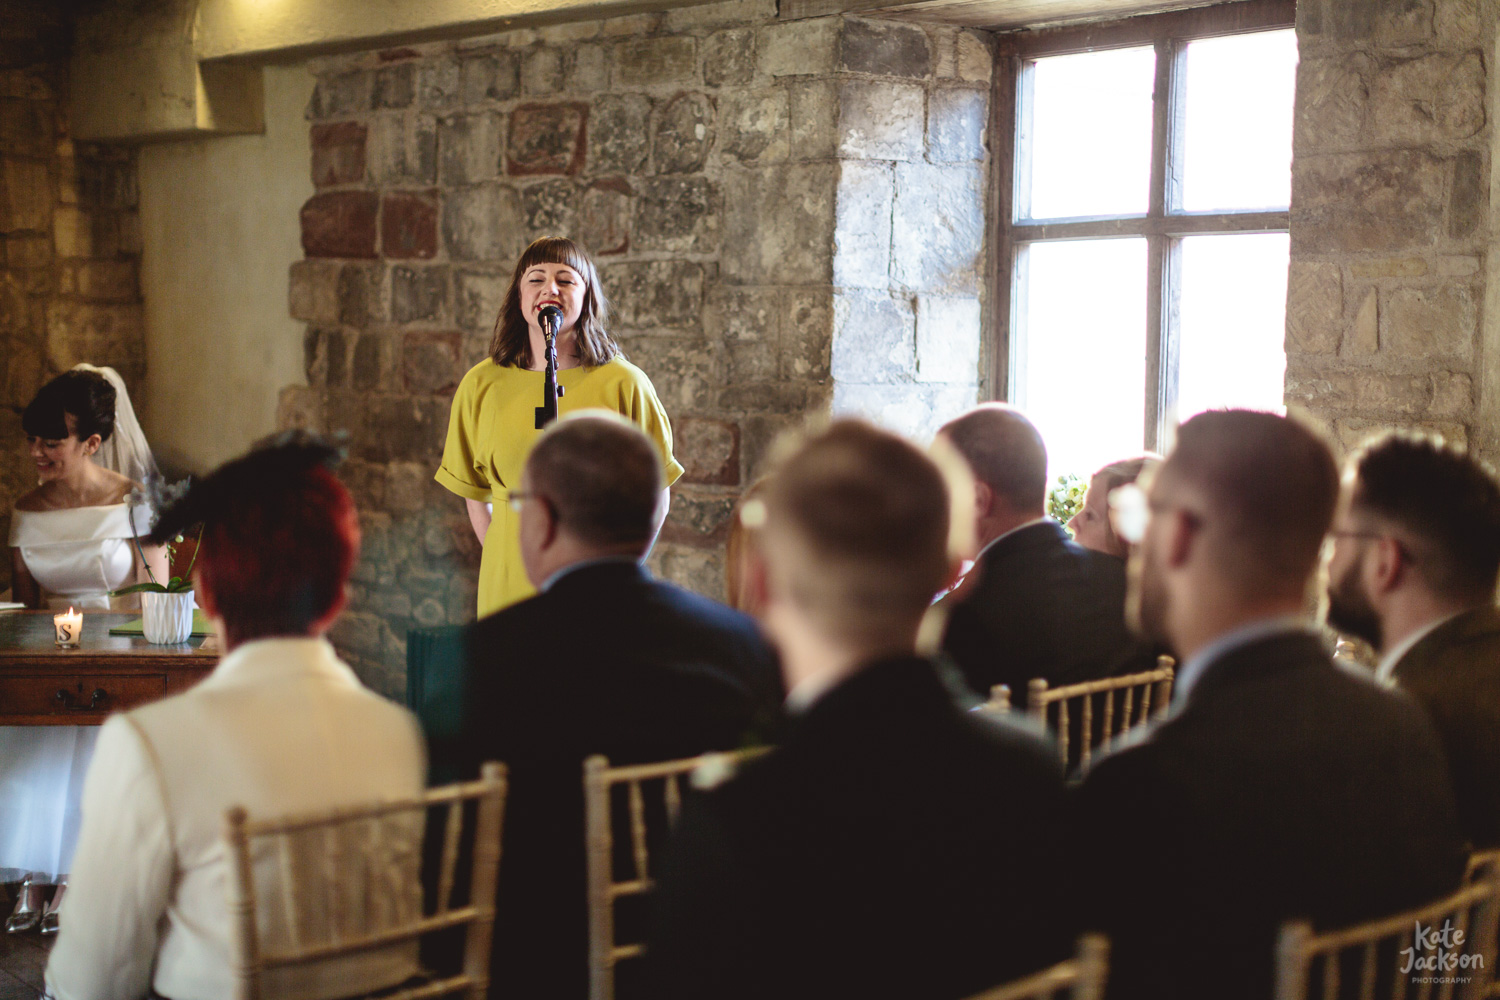 Singing guest during ceremony - Blackfriars Priory Gloucester | Kate Jackson Photography